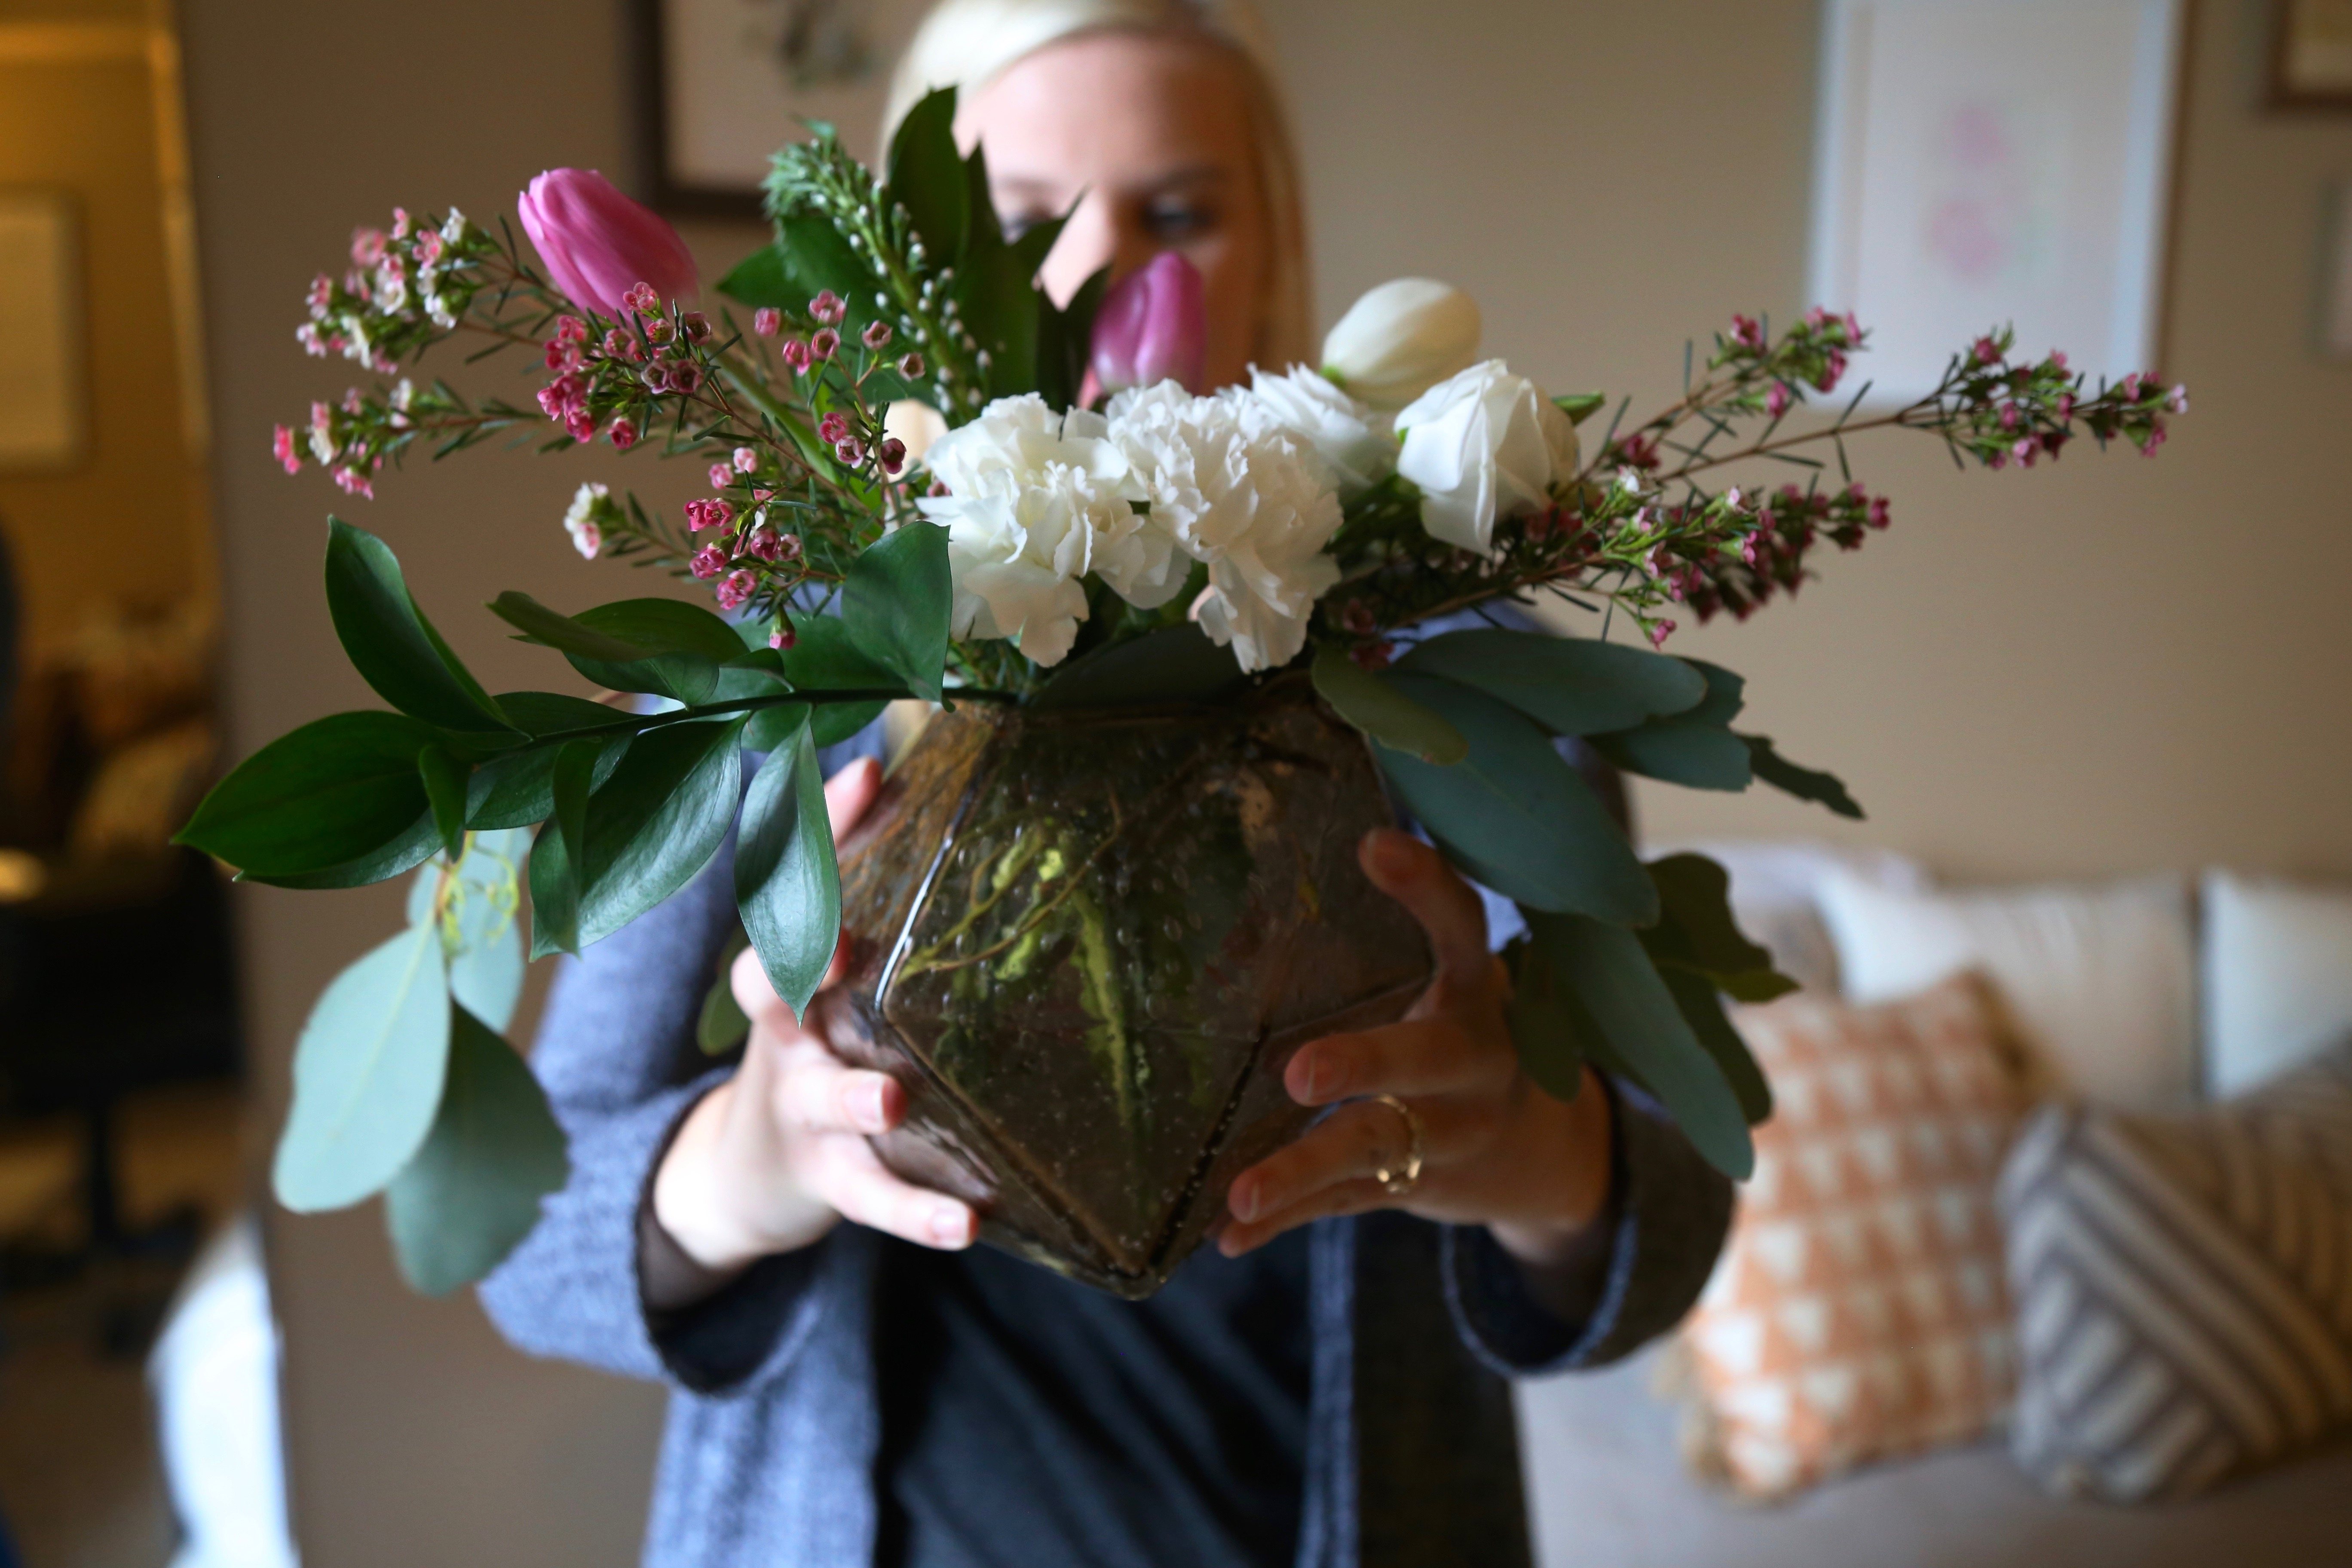 How To Turn A Grocery Store Bouquet Into A Floral Arrangement For